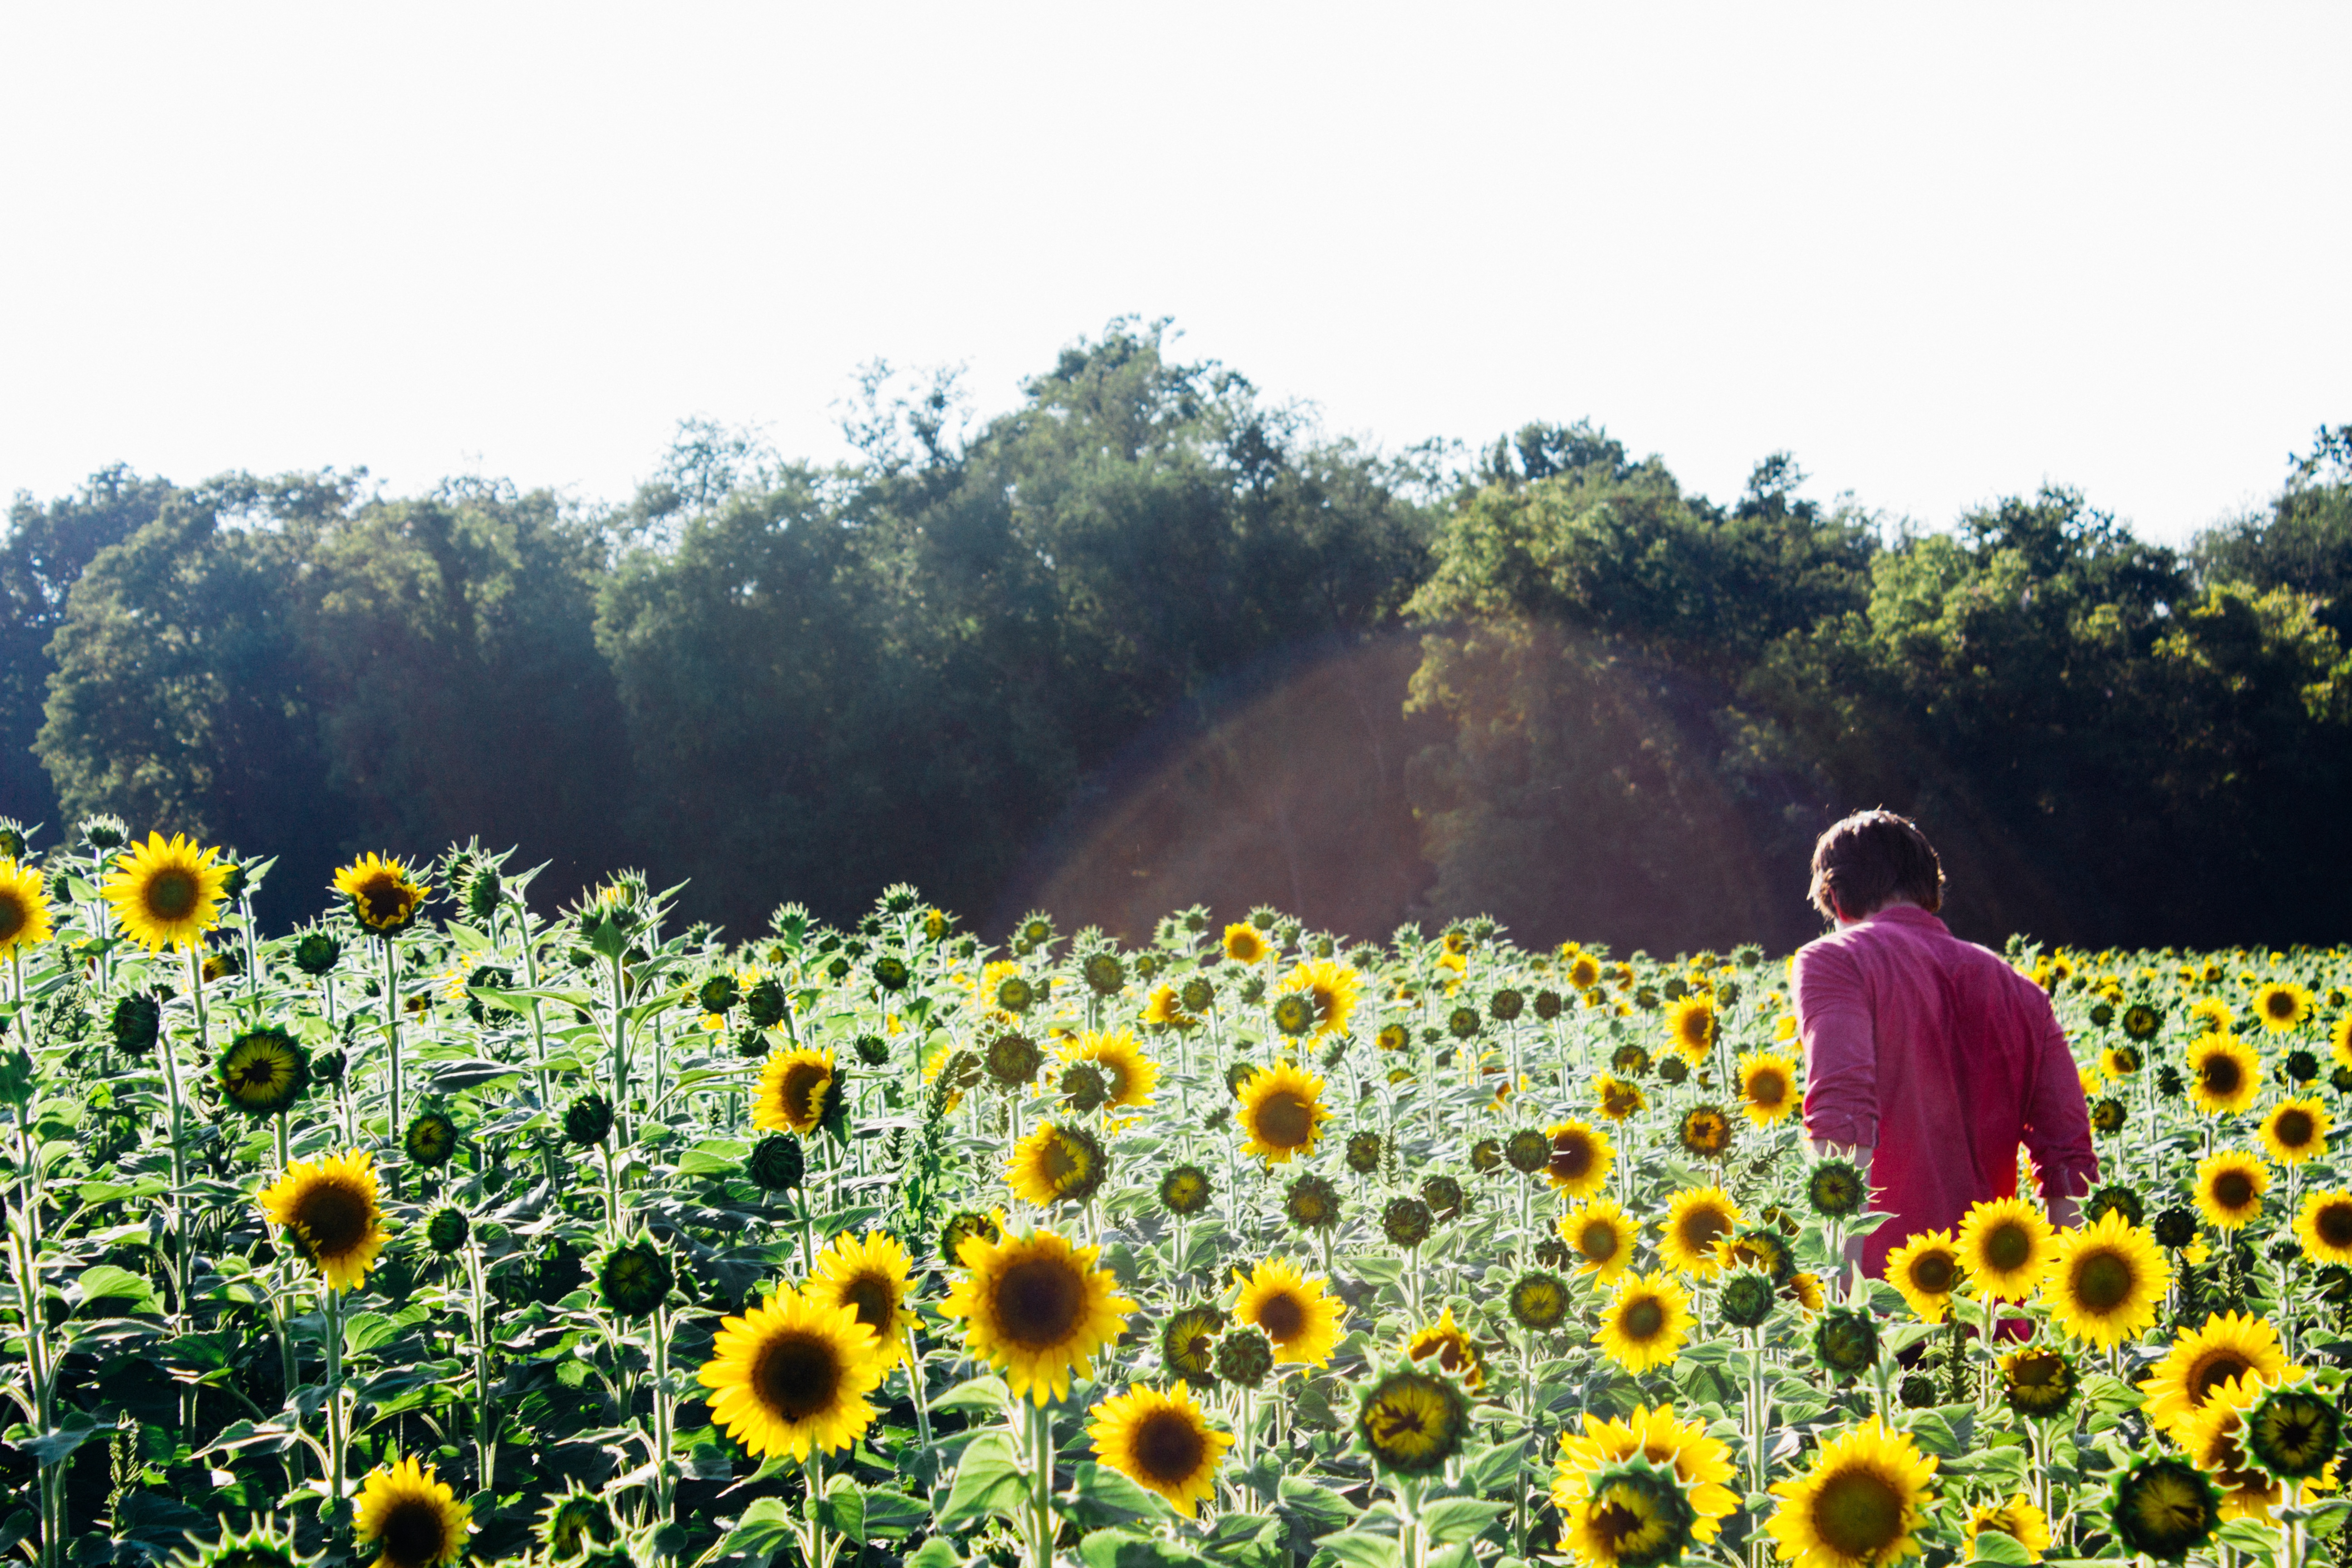 Sun Flowers, Activity, Field, Flowers, Human, HQ Photo